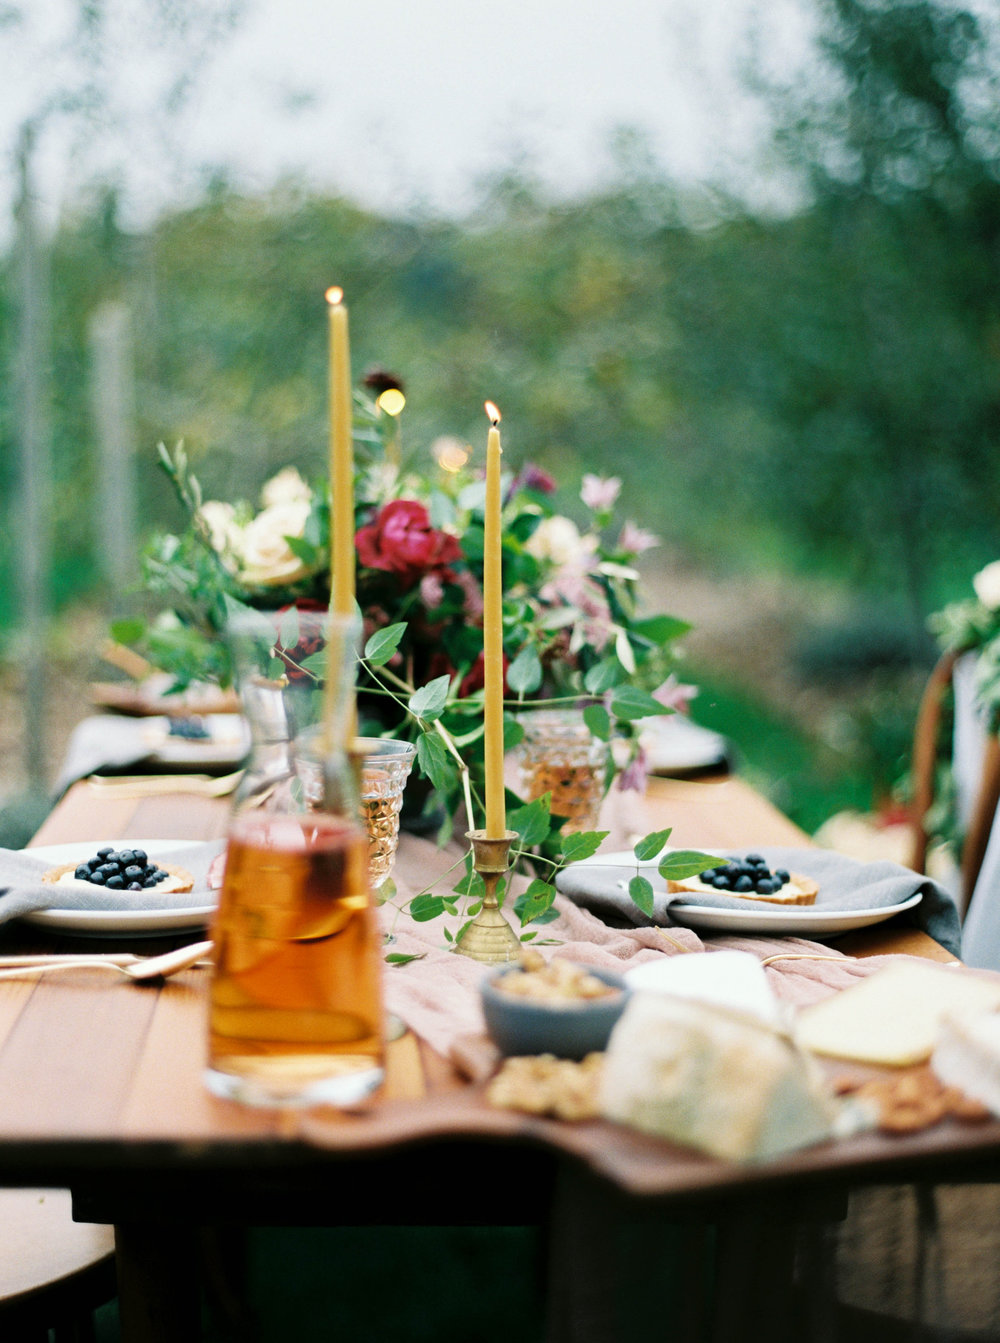 wedding tablescape inspiration for french garden theme.JPG